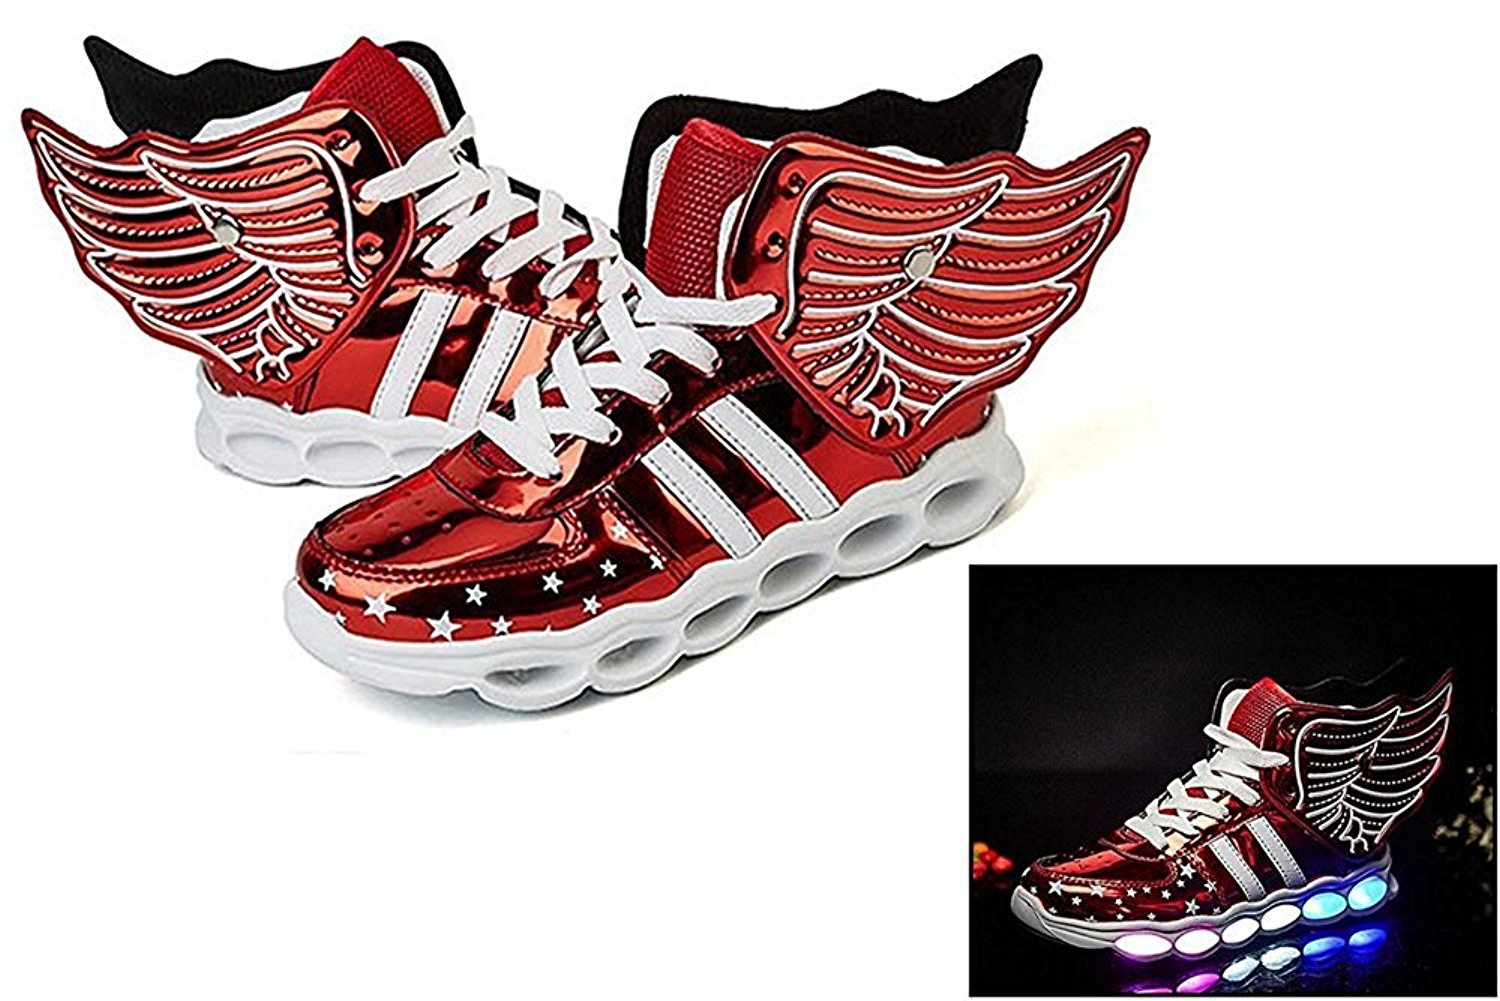 Wings LED Sneaker Kid Flash Glisten Shoes For Boys Girls USB Charge Casual Sneakers